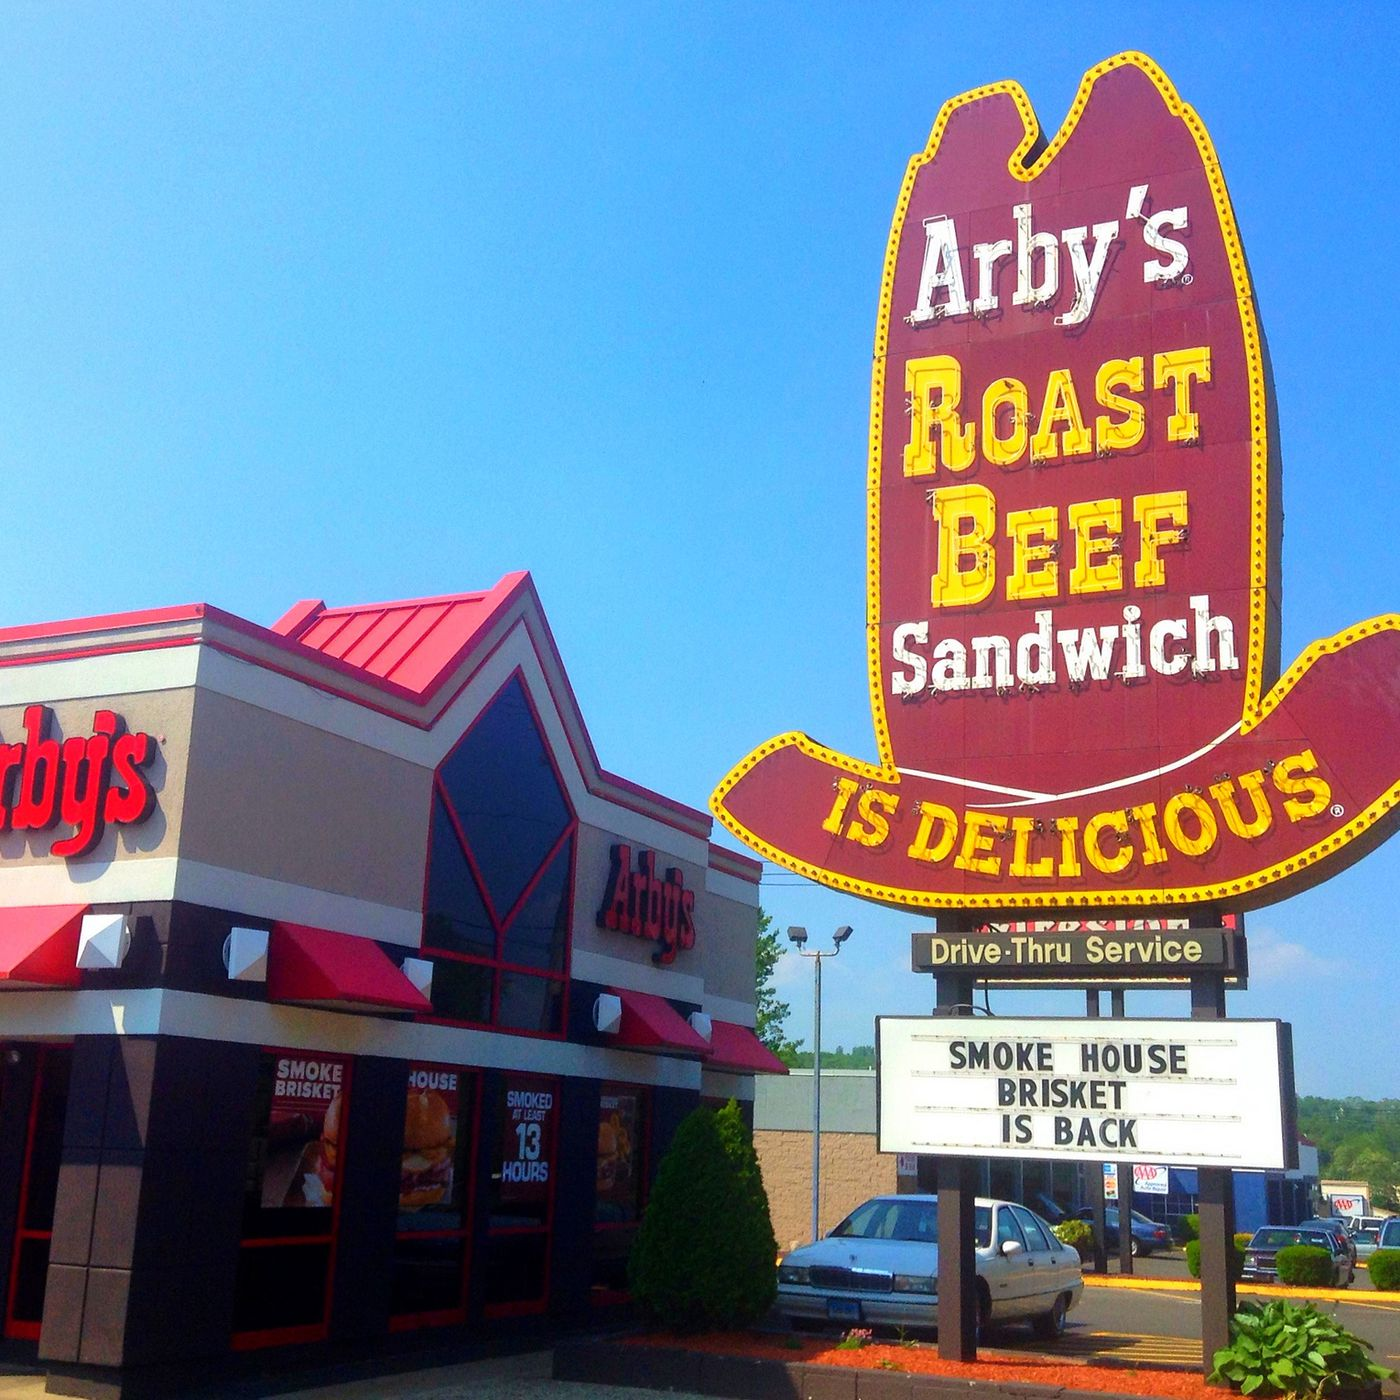 Fast Food Chains Don't Want to Be Called 'Fast Food' Anymore